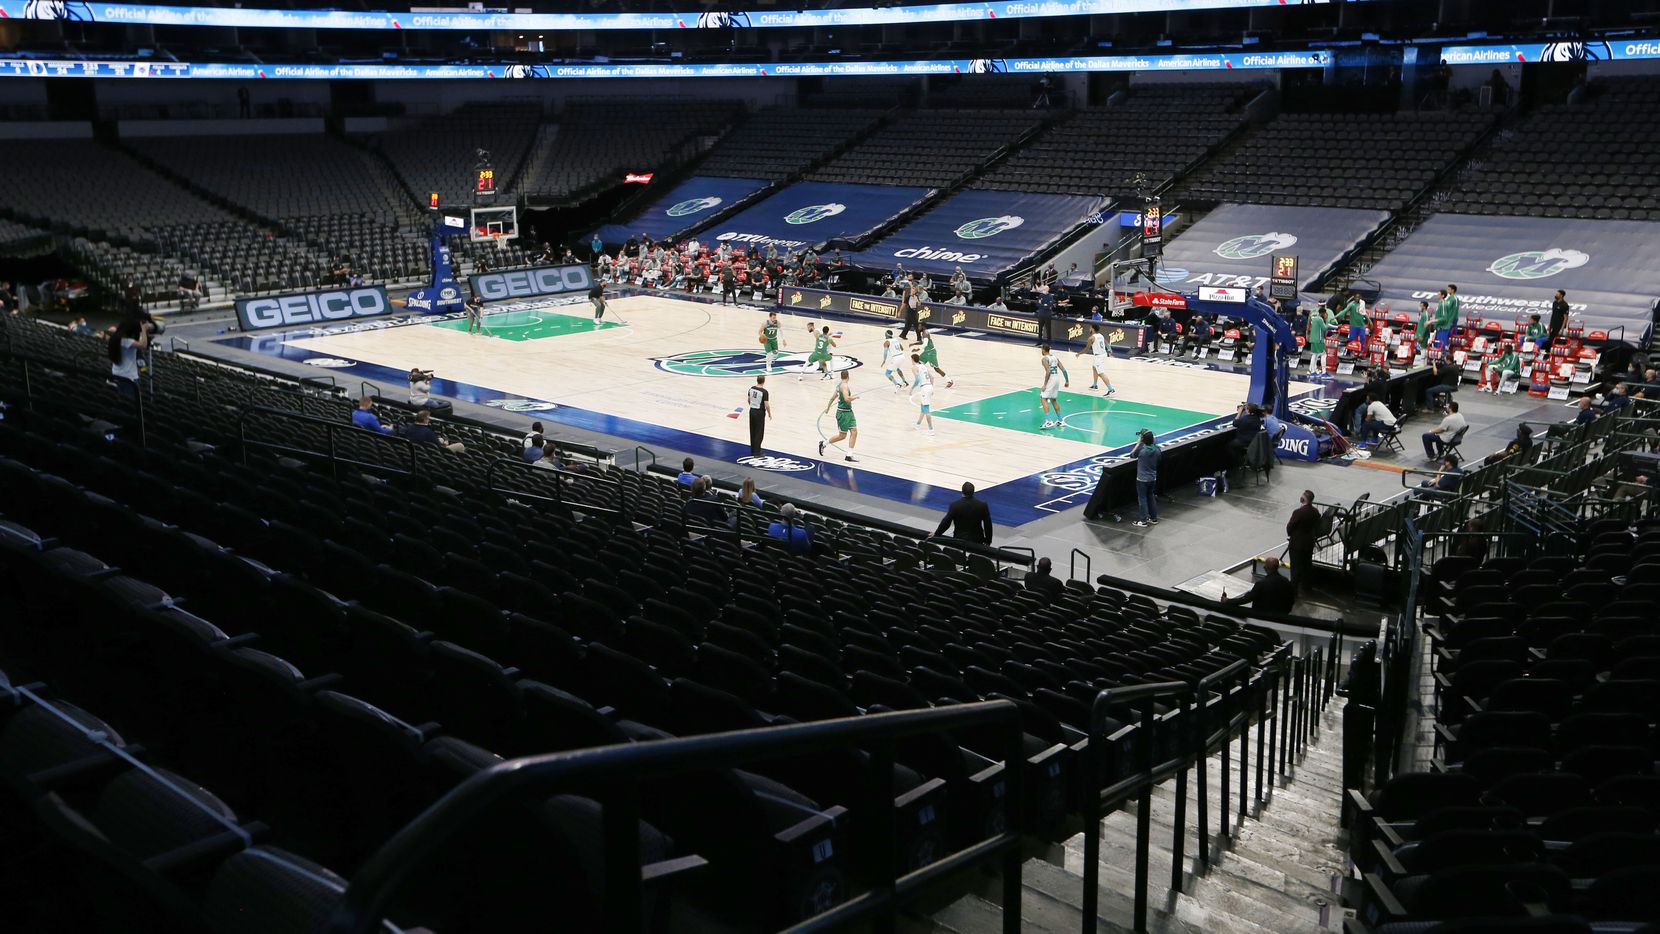 No fans allowed in the arena as the Dallas Mavericks and Charlotte Hornets play in the first quarter of play of the home opener at American Airlines Center on Wednesday, December 30, 2020 in Dallas.